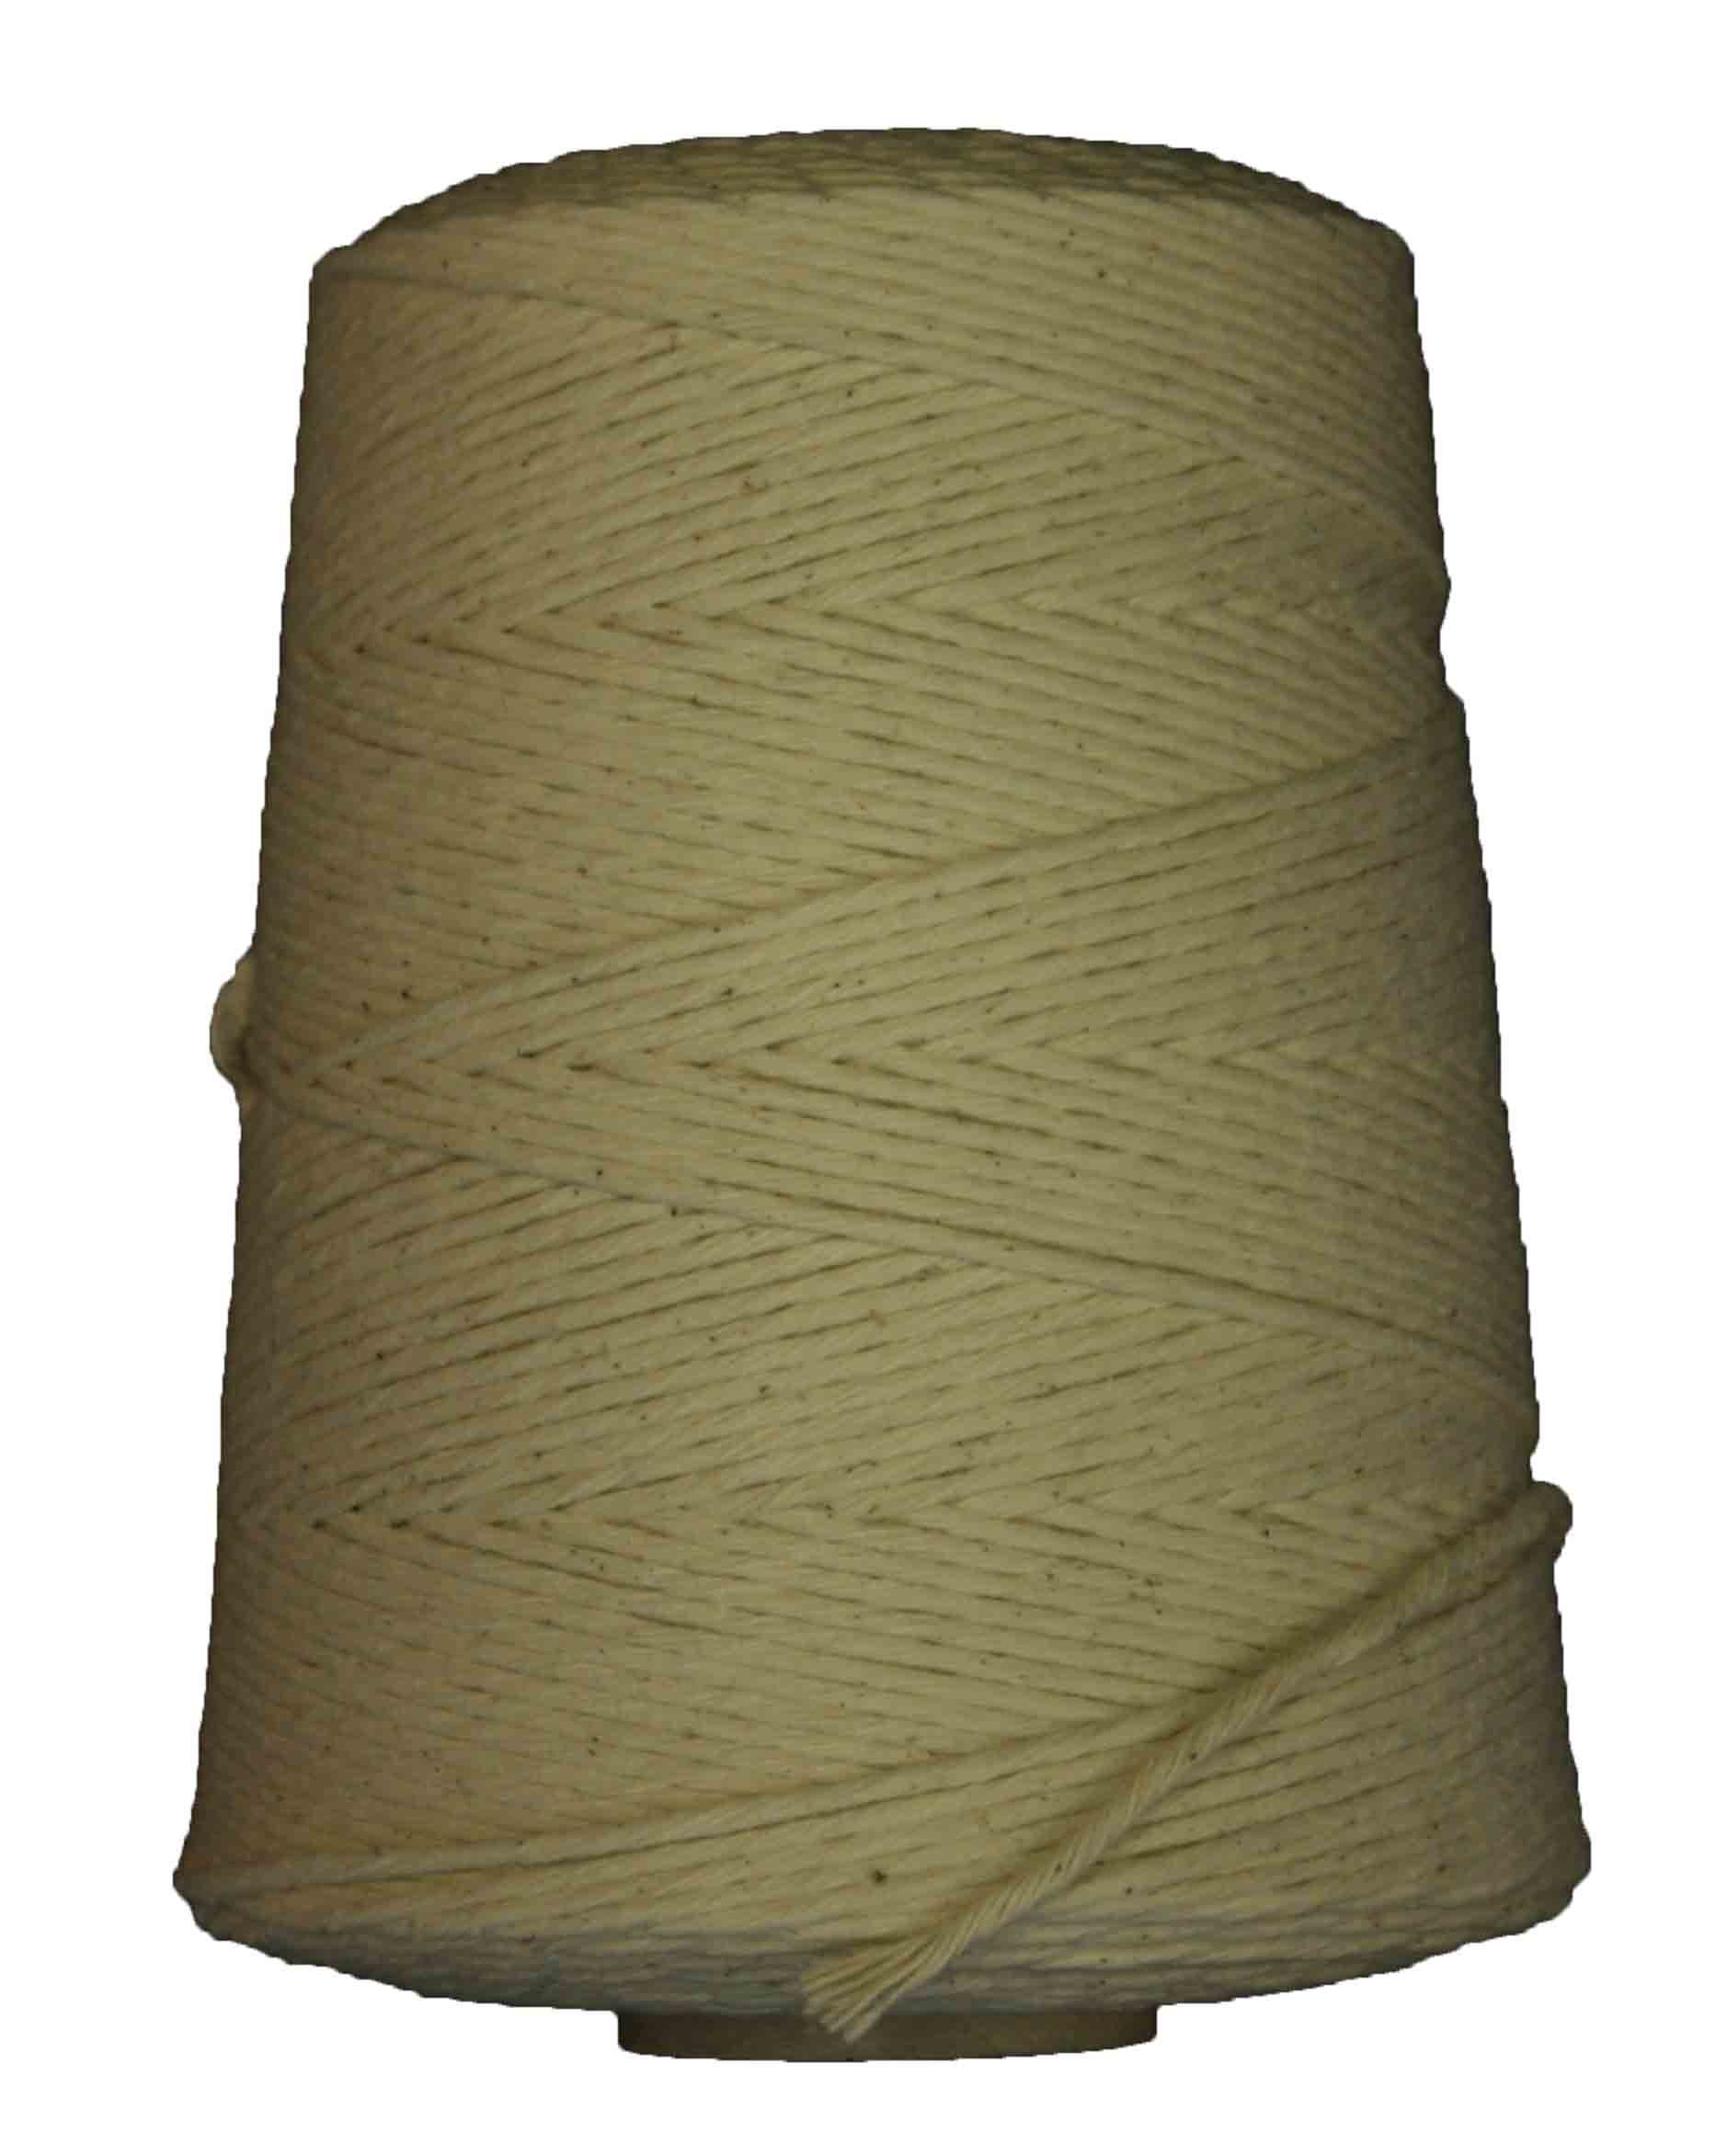 Butcher's Twine. 3,600 Foot Roll of Prime Source Brand Butcher Twine. 24 Ply. Breaking Strength of 26 Lbs.